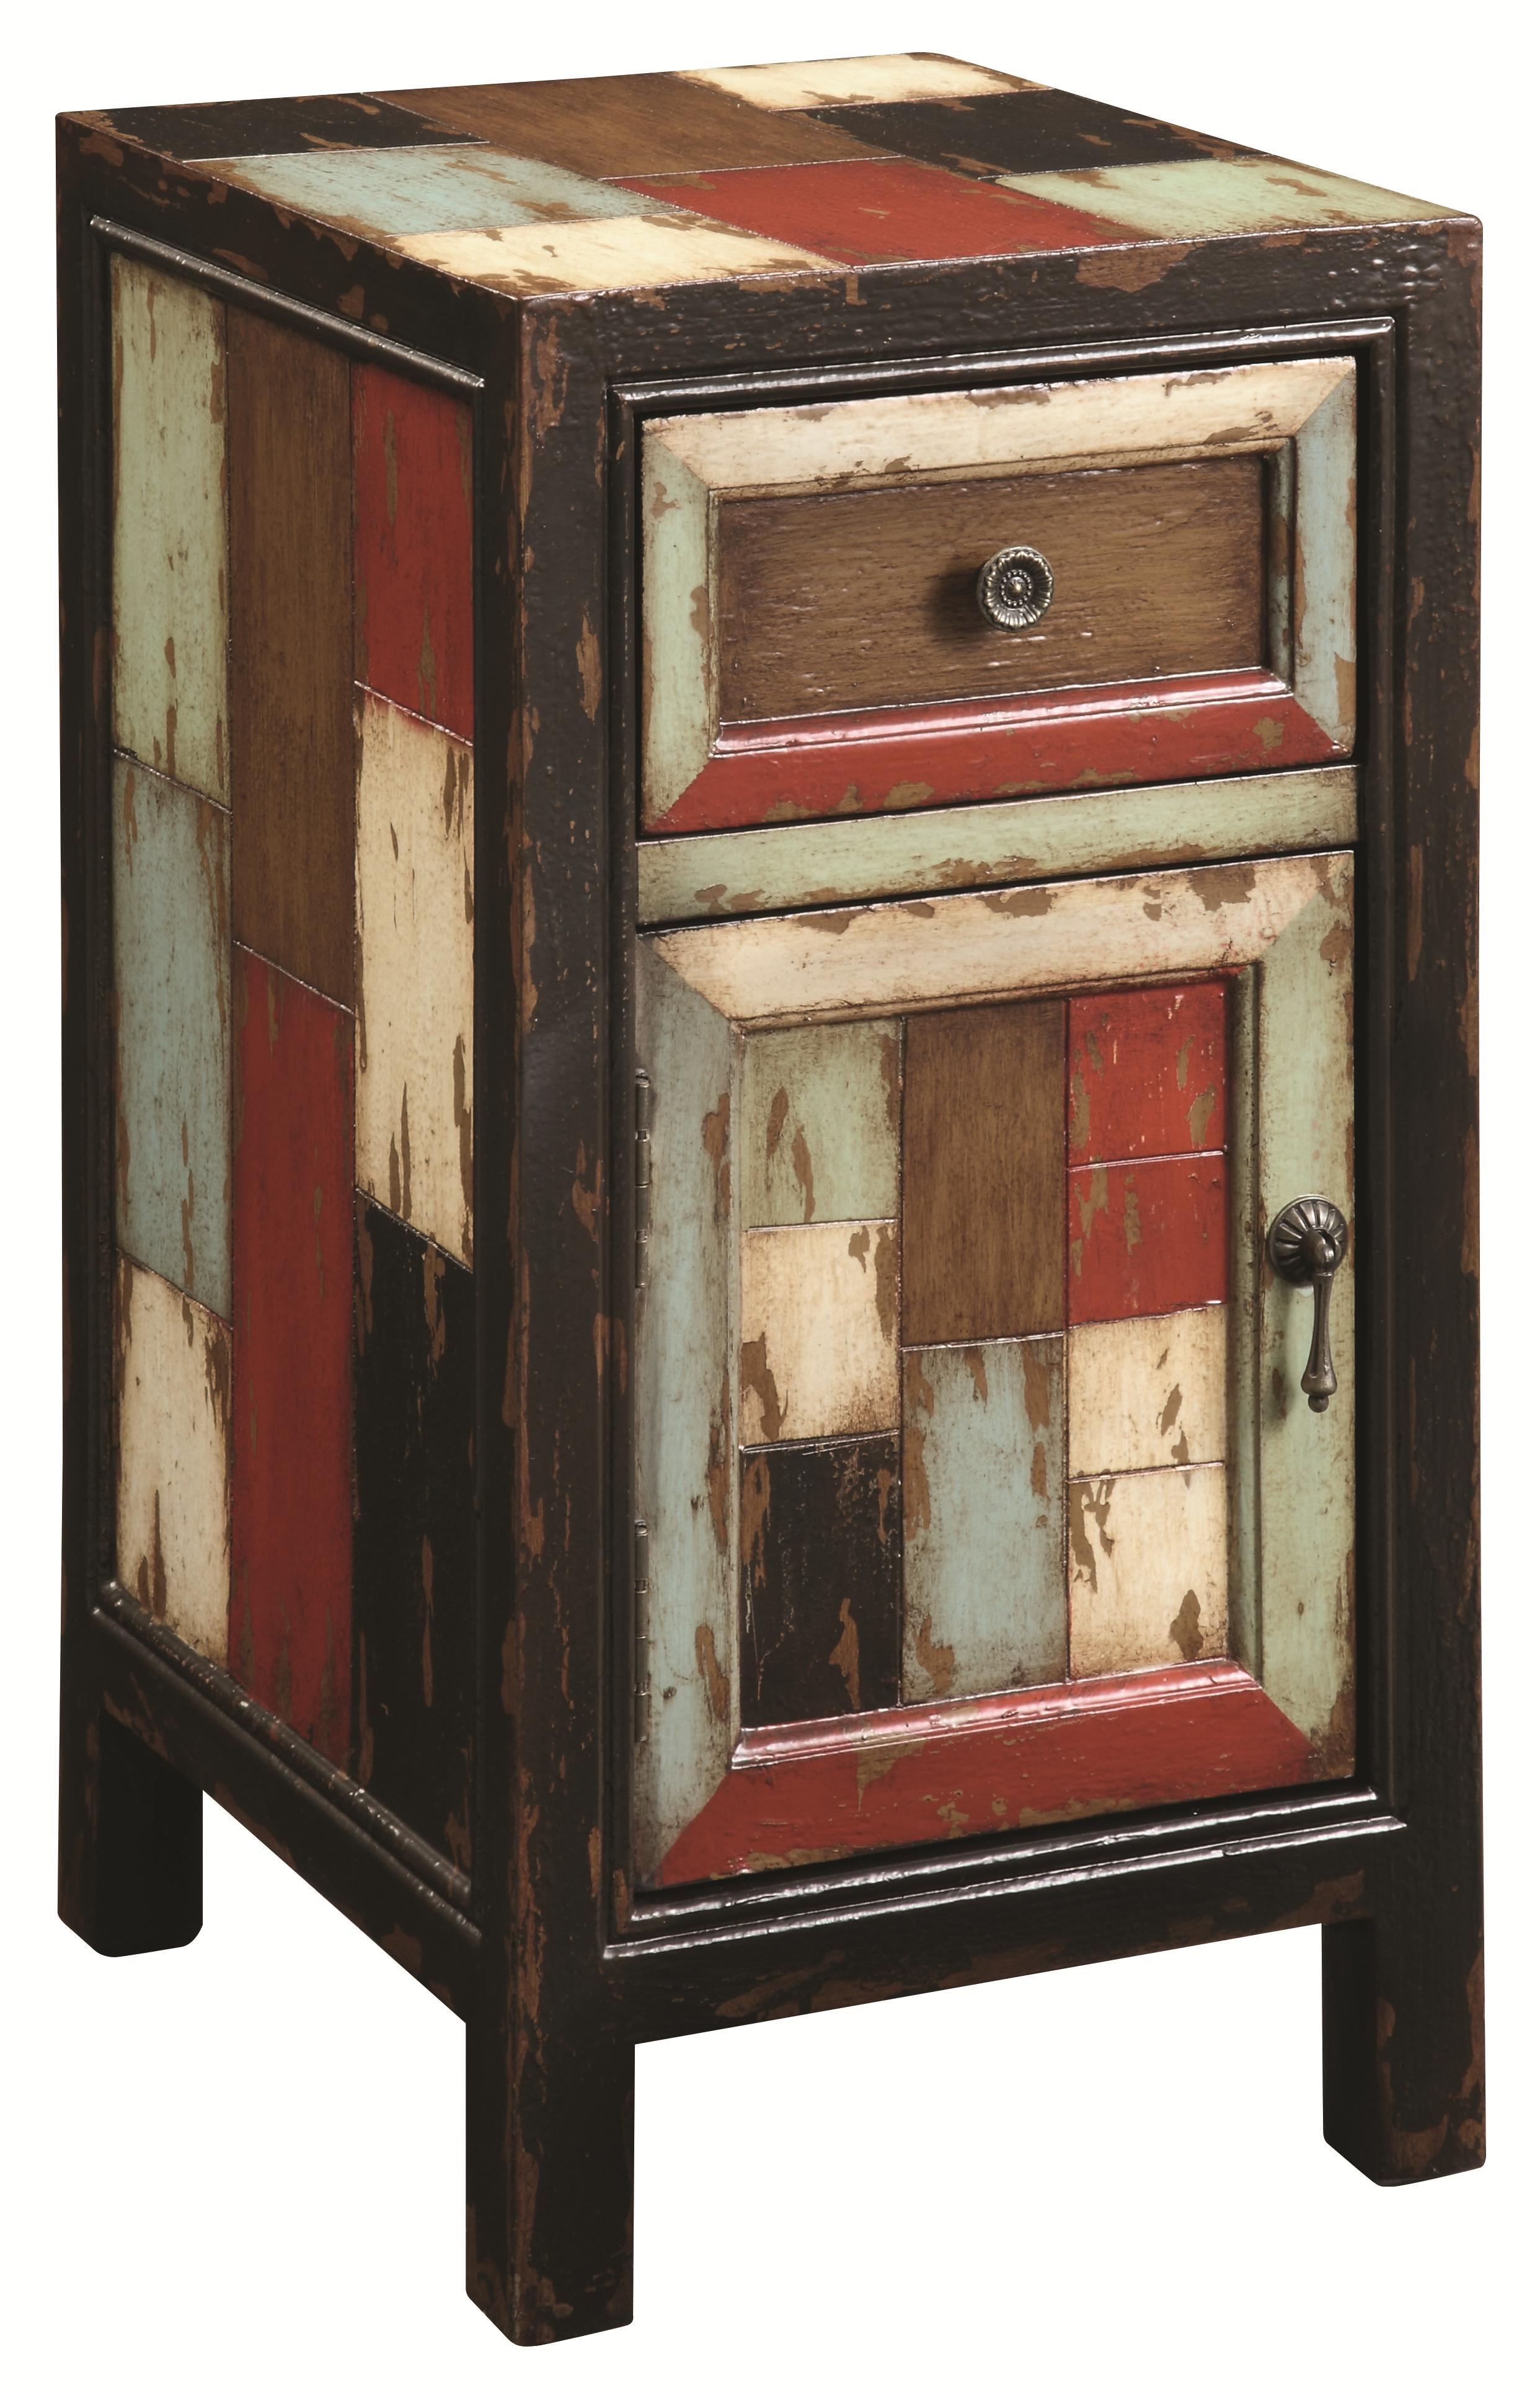 Coast to Coast Imports Occasional Accents Rustic Chairside Cabinet with Drawer - Item Number: 39622